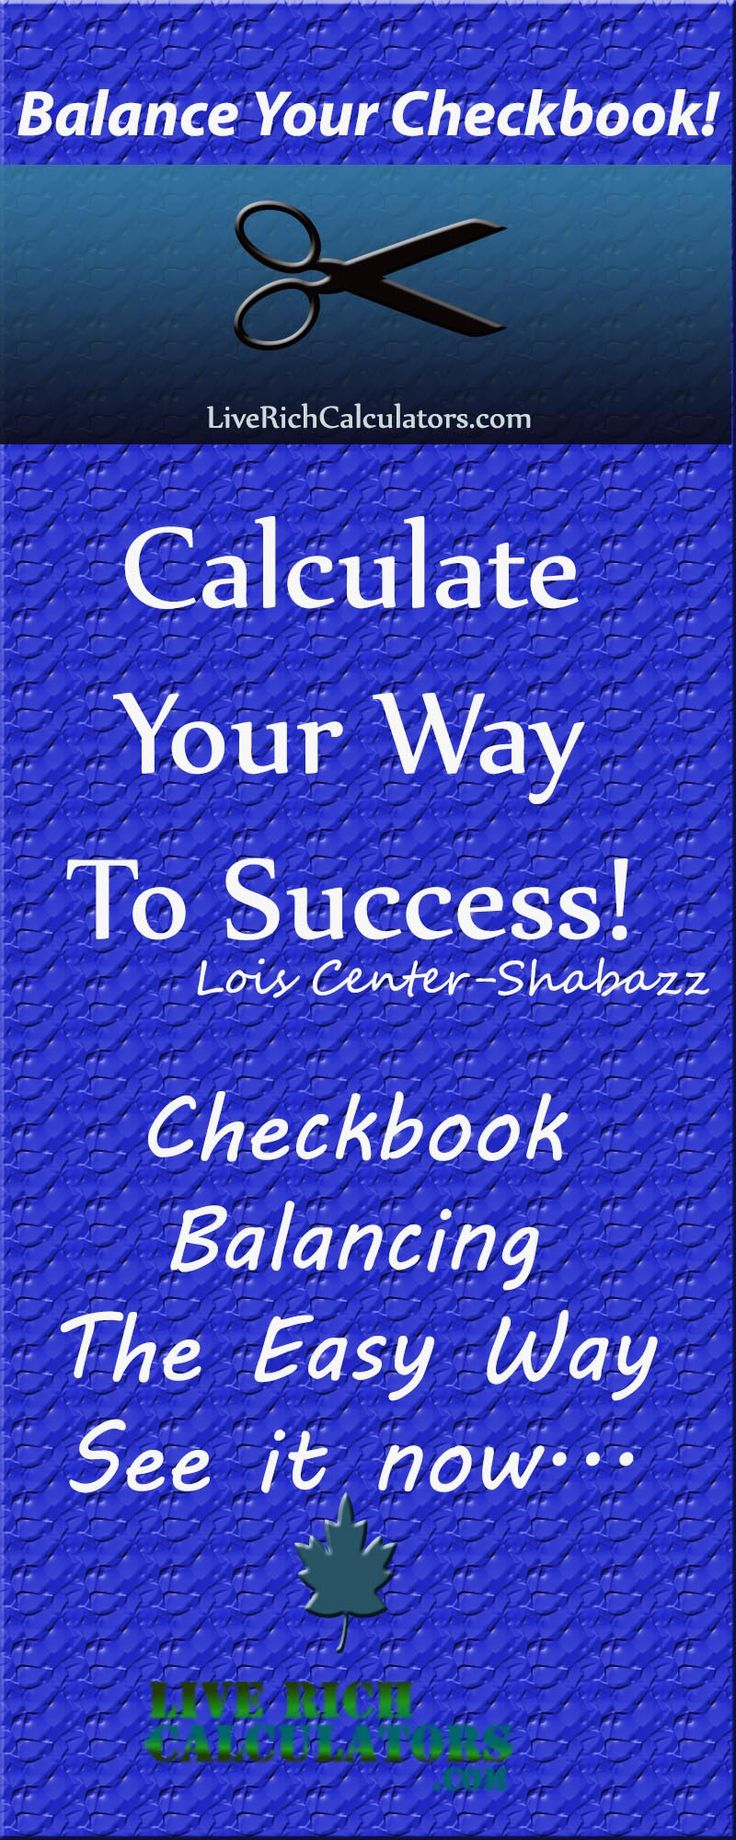 Check balancing the easy way. Use this convenient financial calculator. http://www.liverichcalculators.com/account-reconciliation-calculator.html